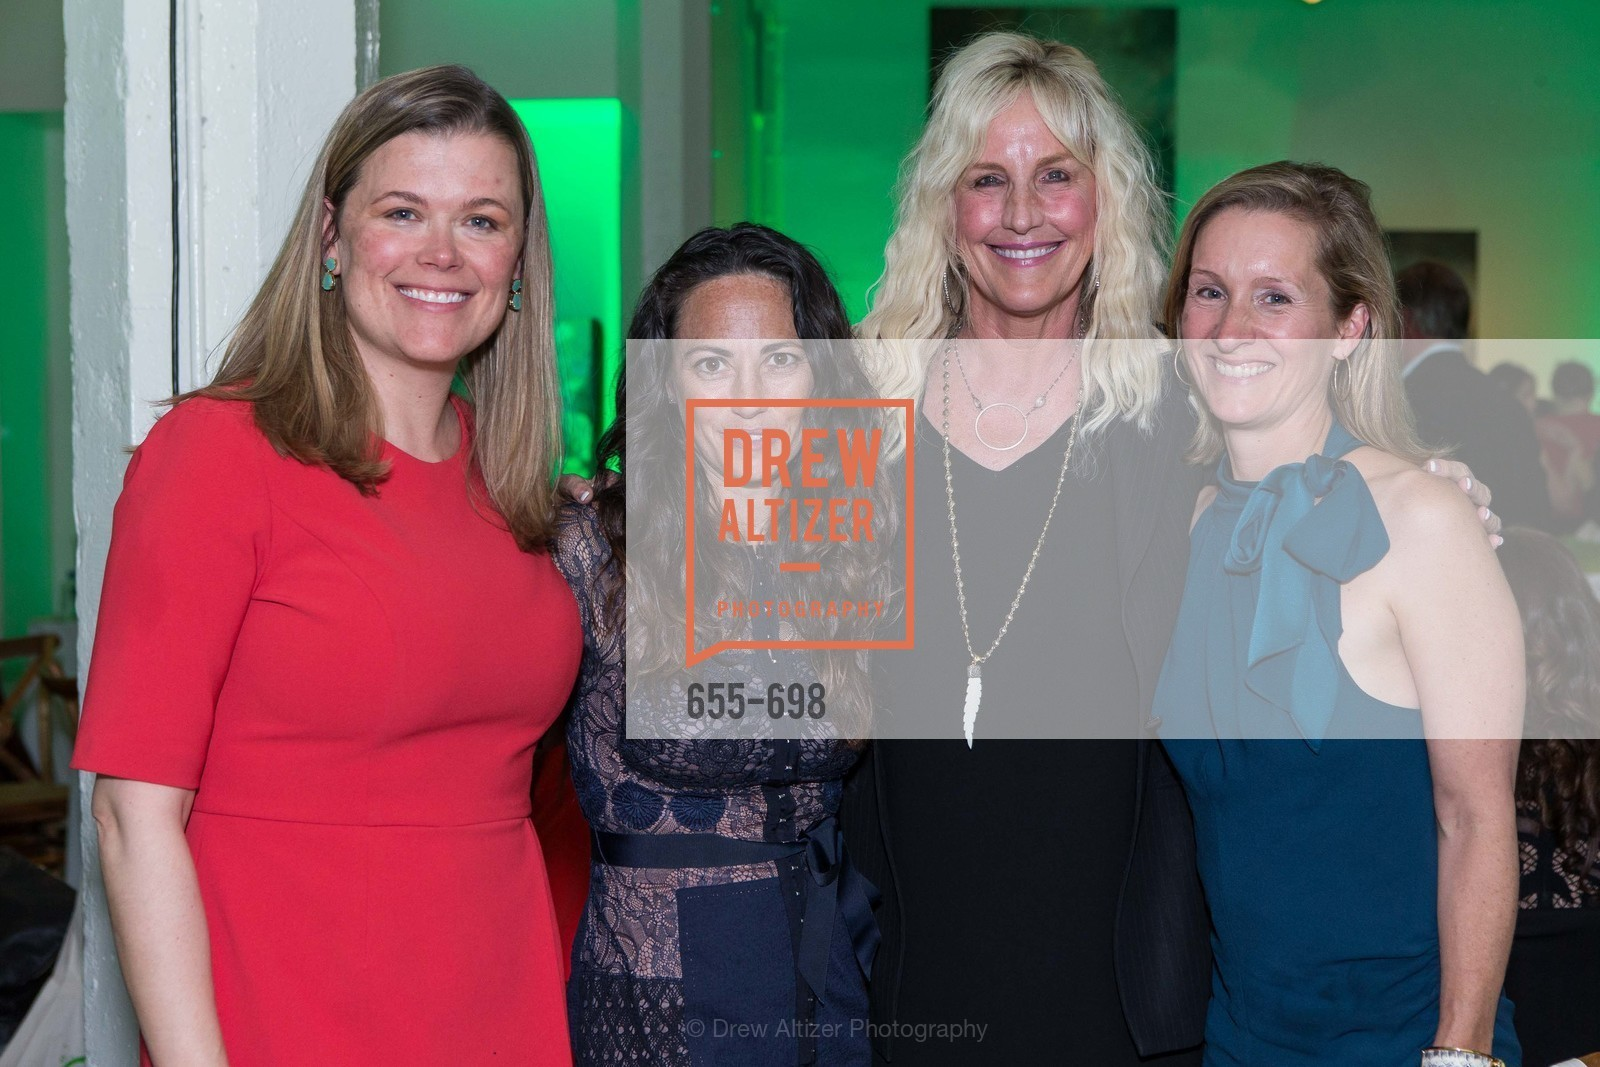 Heather White, Nicole Dawes, Erin Brockovich, Carol McConnell, EWG's 6th Annual Earth Dinner, US, May 5th, 2015,Drew Altizer, Drew Altizer Photography, full-service agency, private events, San Francisco photographer, photographer california